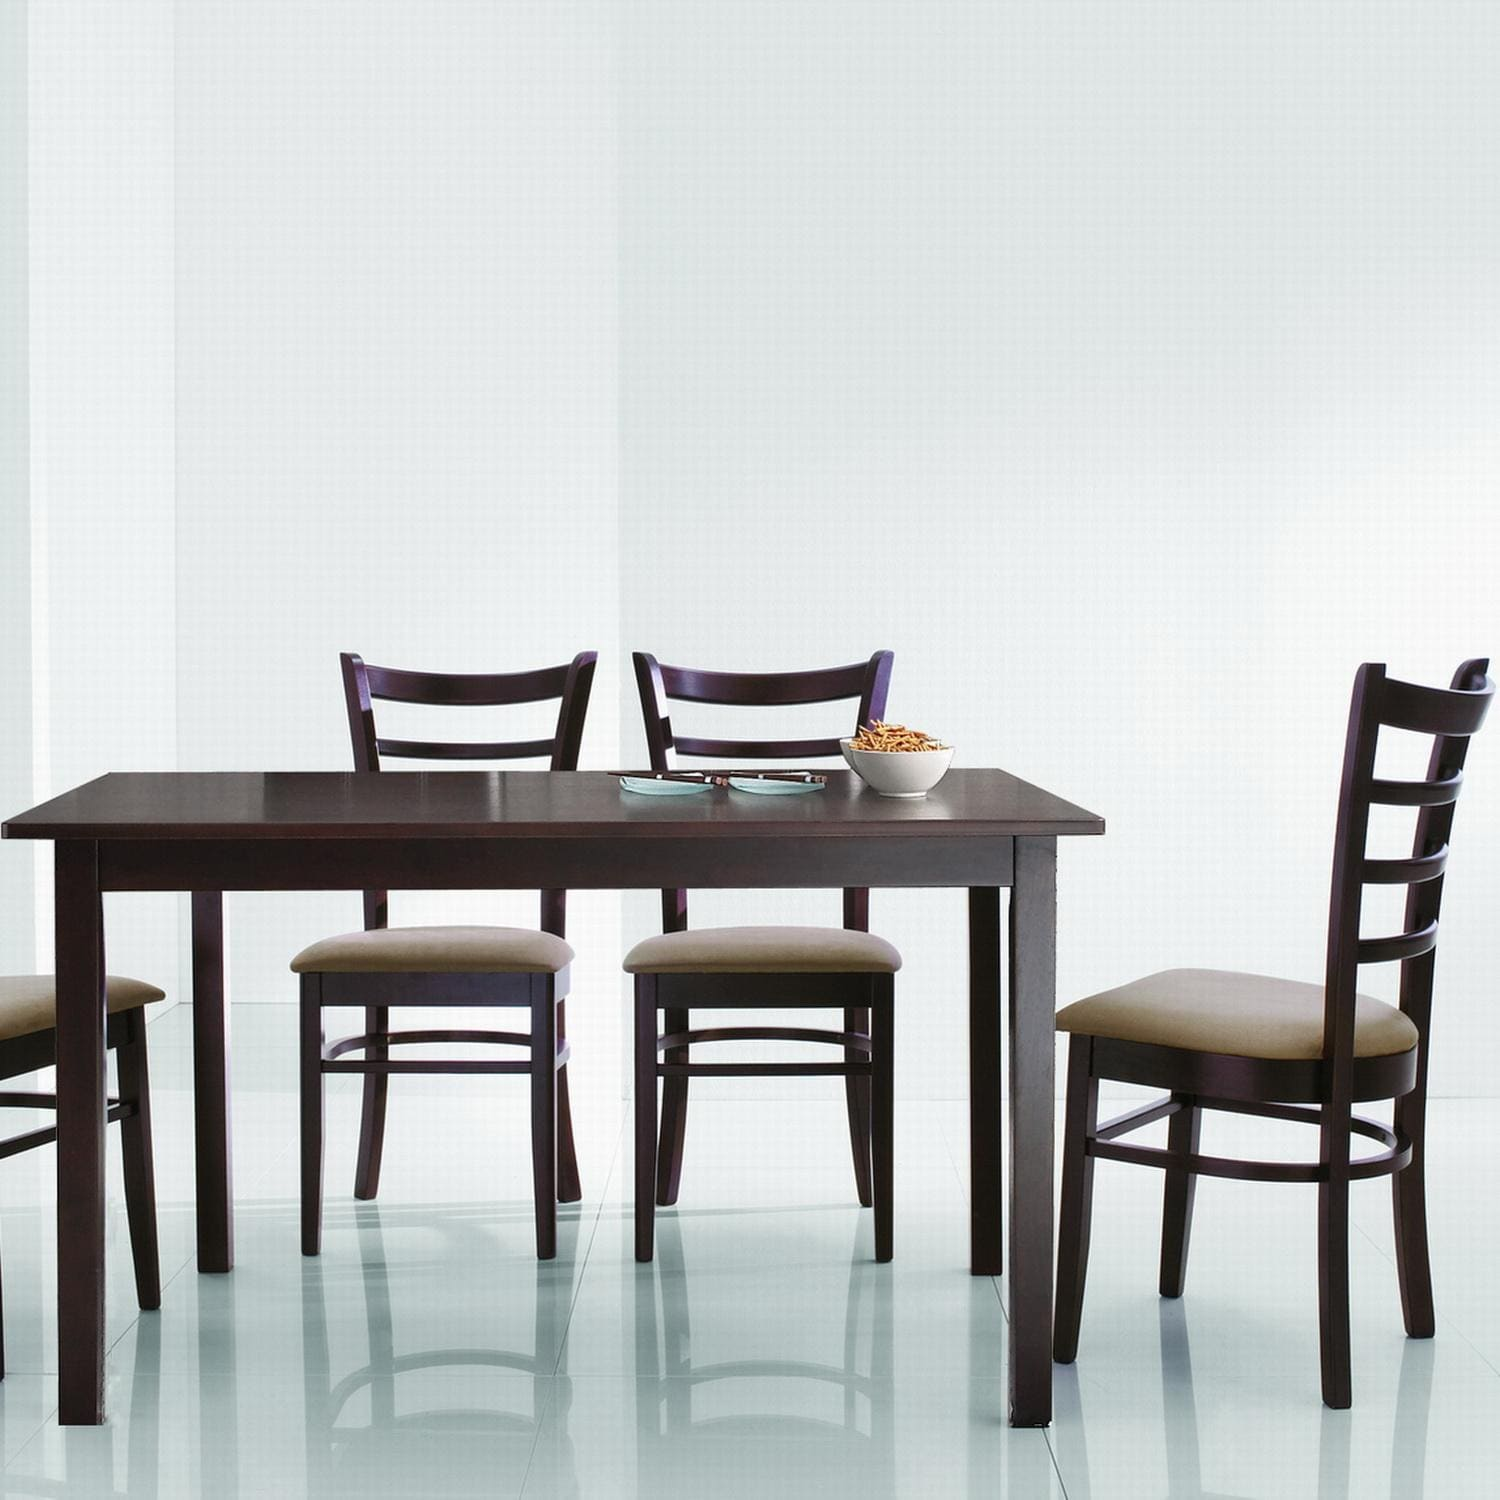 dark brown 5 piece modern dining set furniture table chairs room style